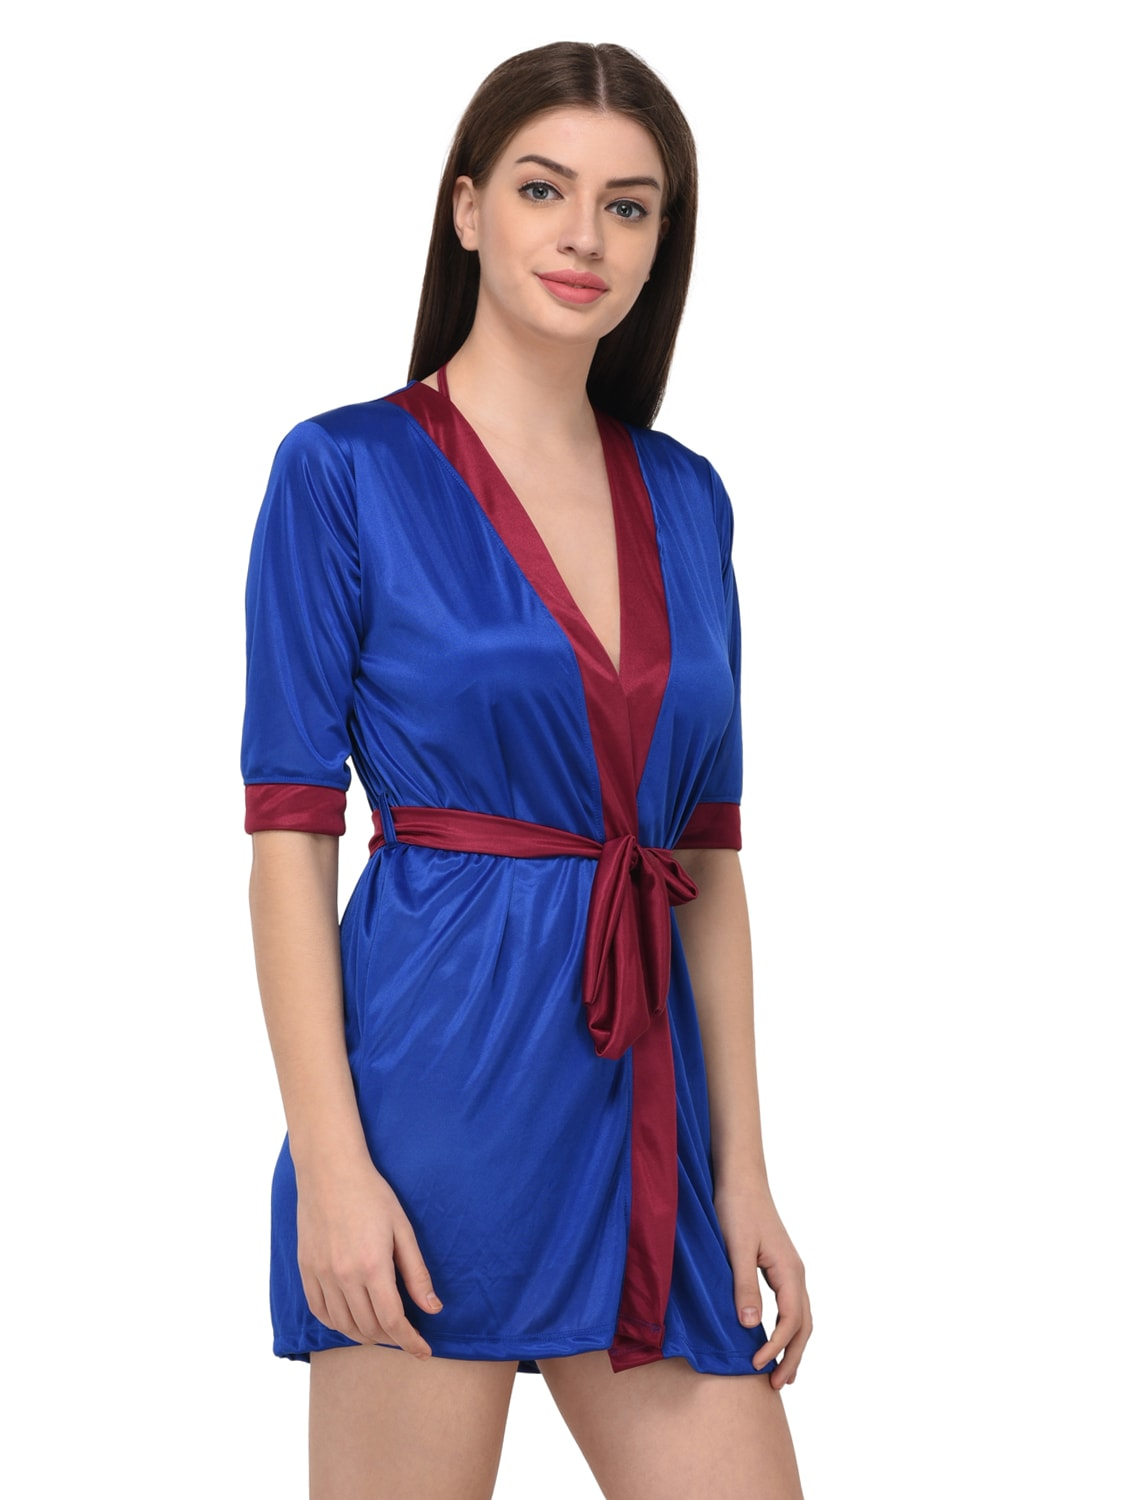 ... blue satin sleepwear robe with bra panty set - 14965001 - Zoom Image - 4 9cd0d3ccd